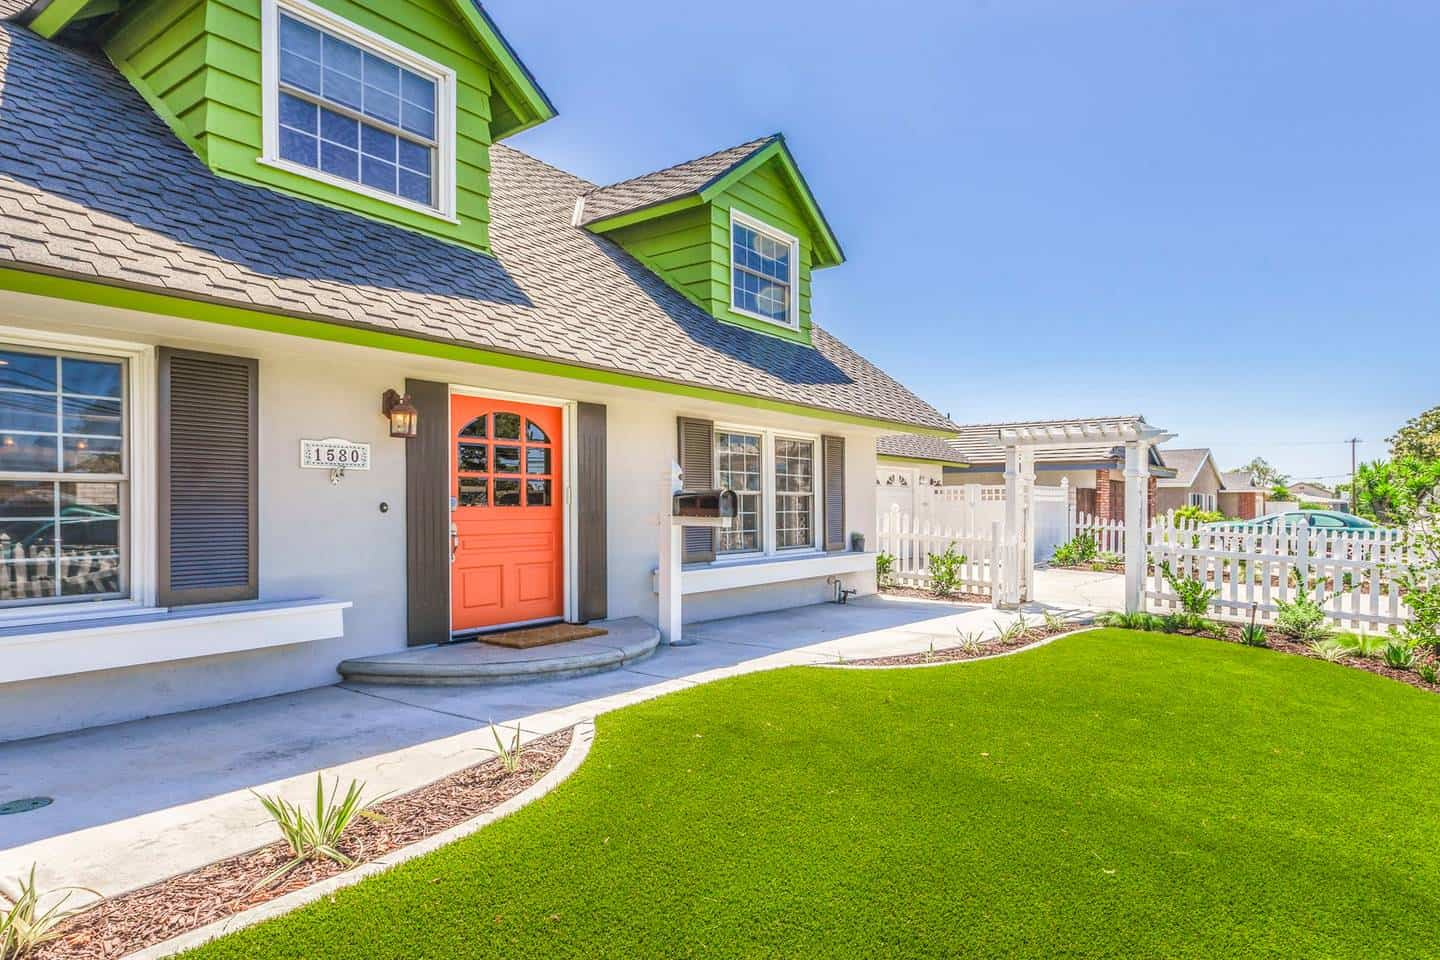 15 Dreamy AirBNB Anaheim Vacation Rentals August 2019